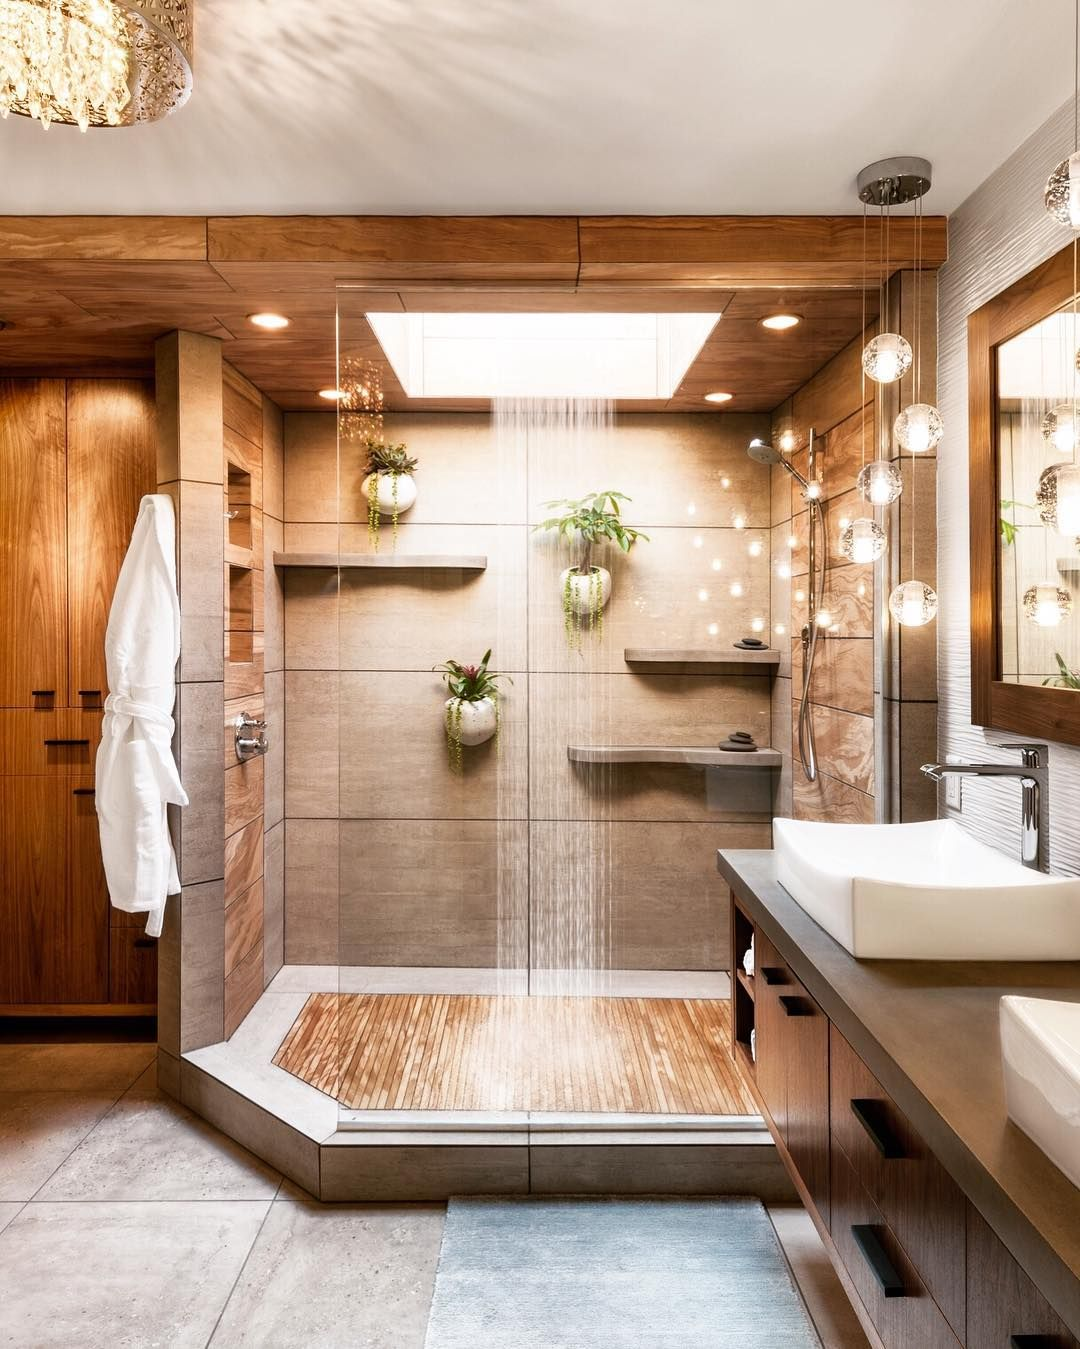 Photo of Biophilic & Sustainable Interior Design · 6 steps to a relaxing natural bathroom design · DforDesign